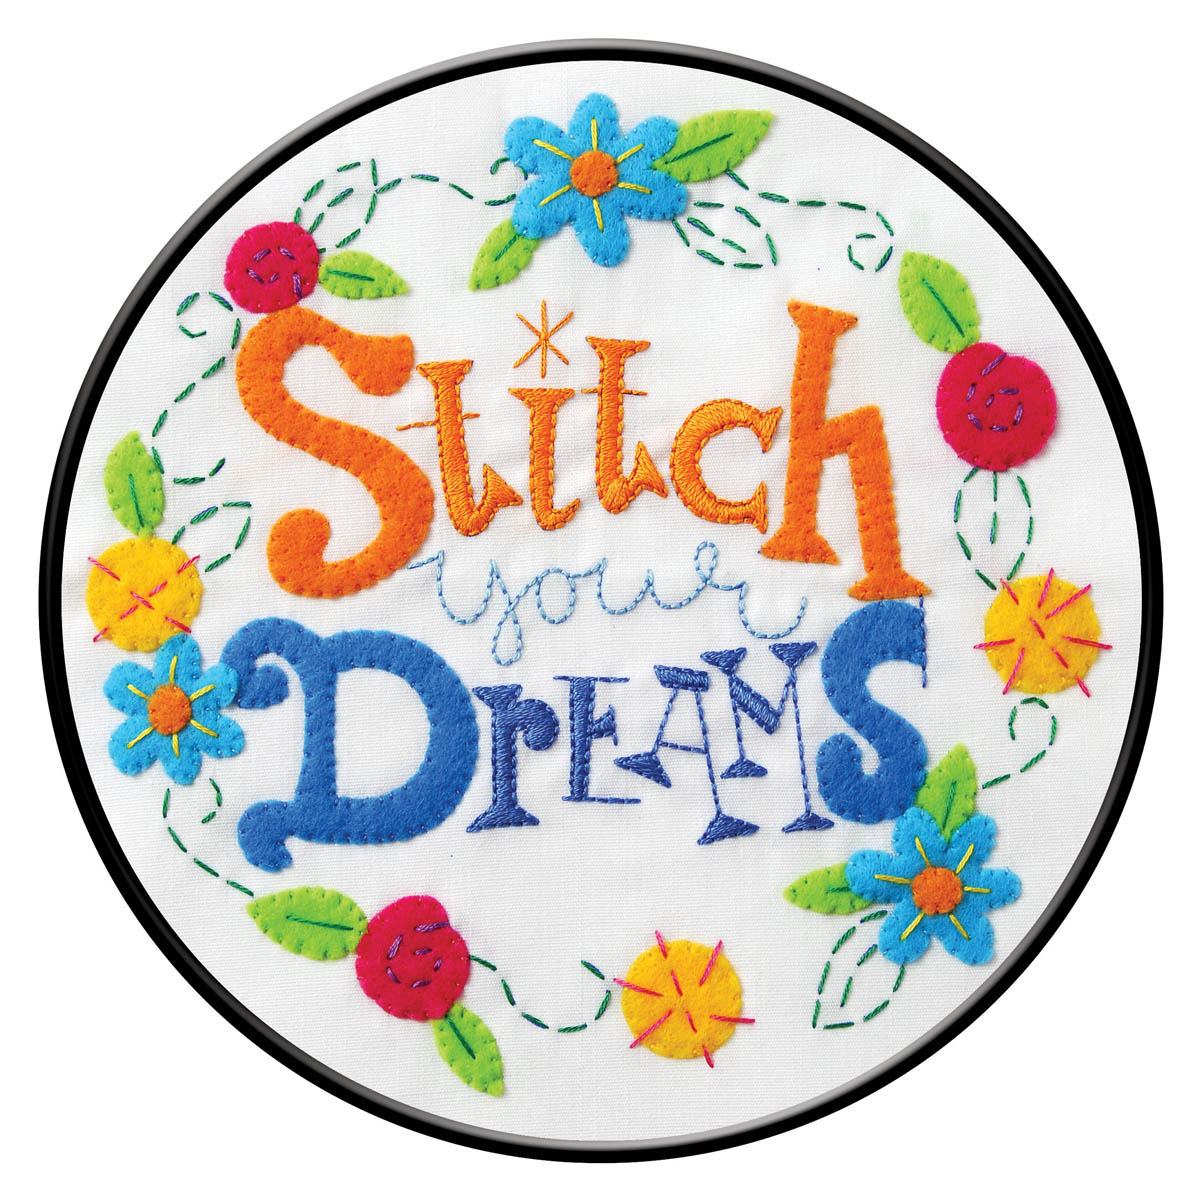 Bucilla ® Stamped Embroidery - Stitch Your Dreams